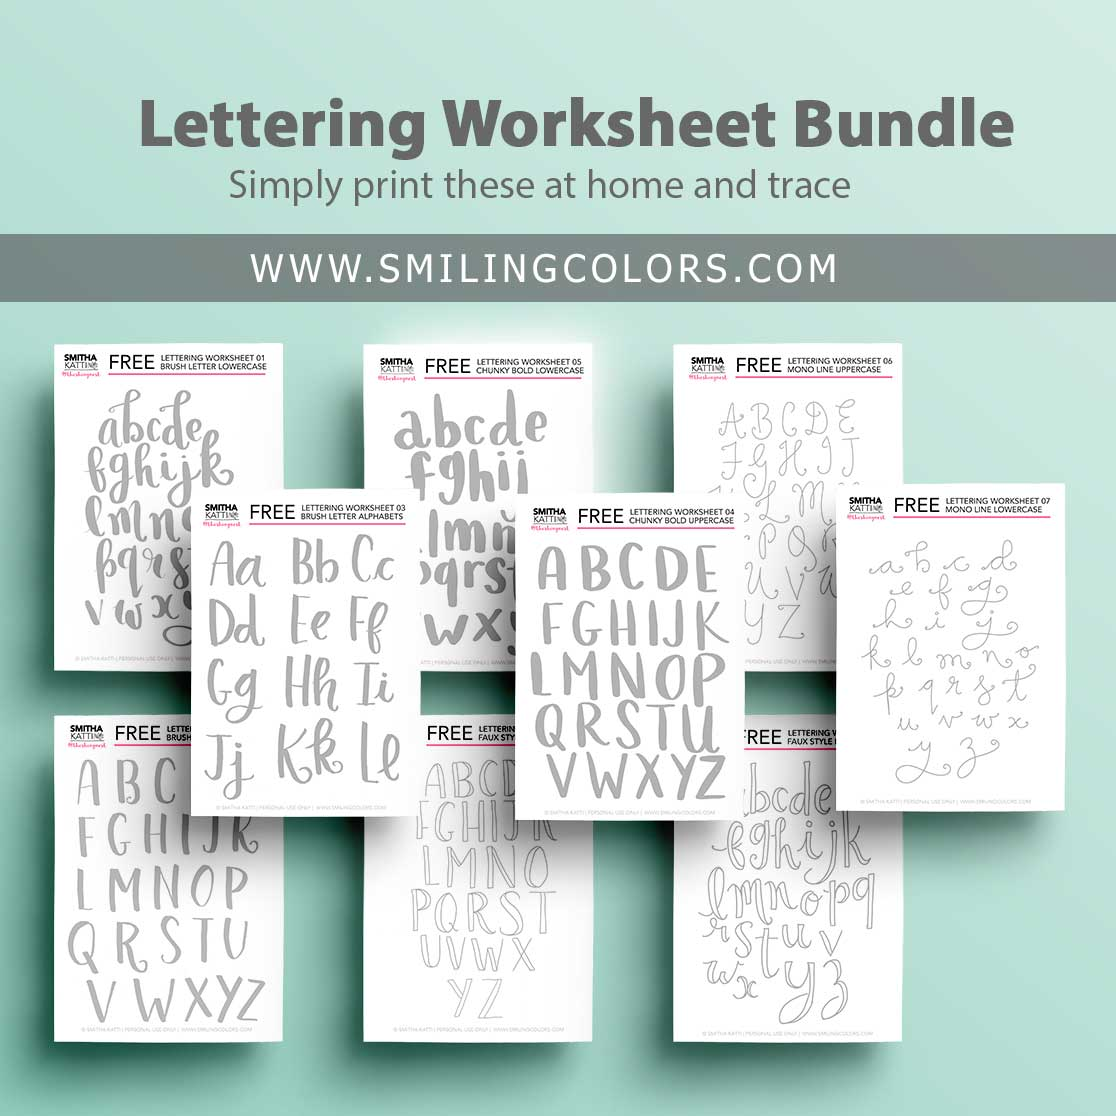 Lettering worksheets: 9 FREE printable practice sheets to trace